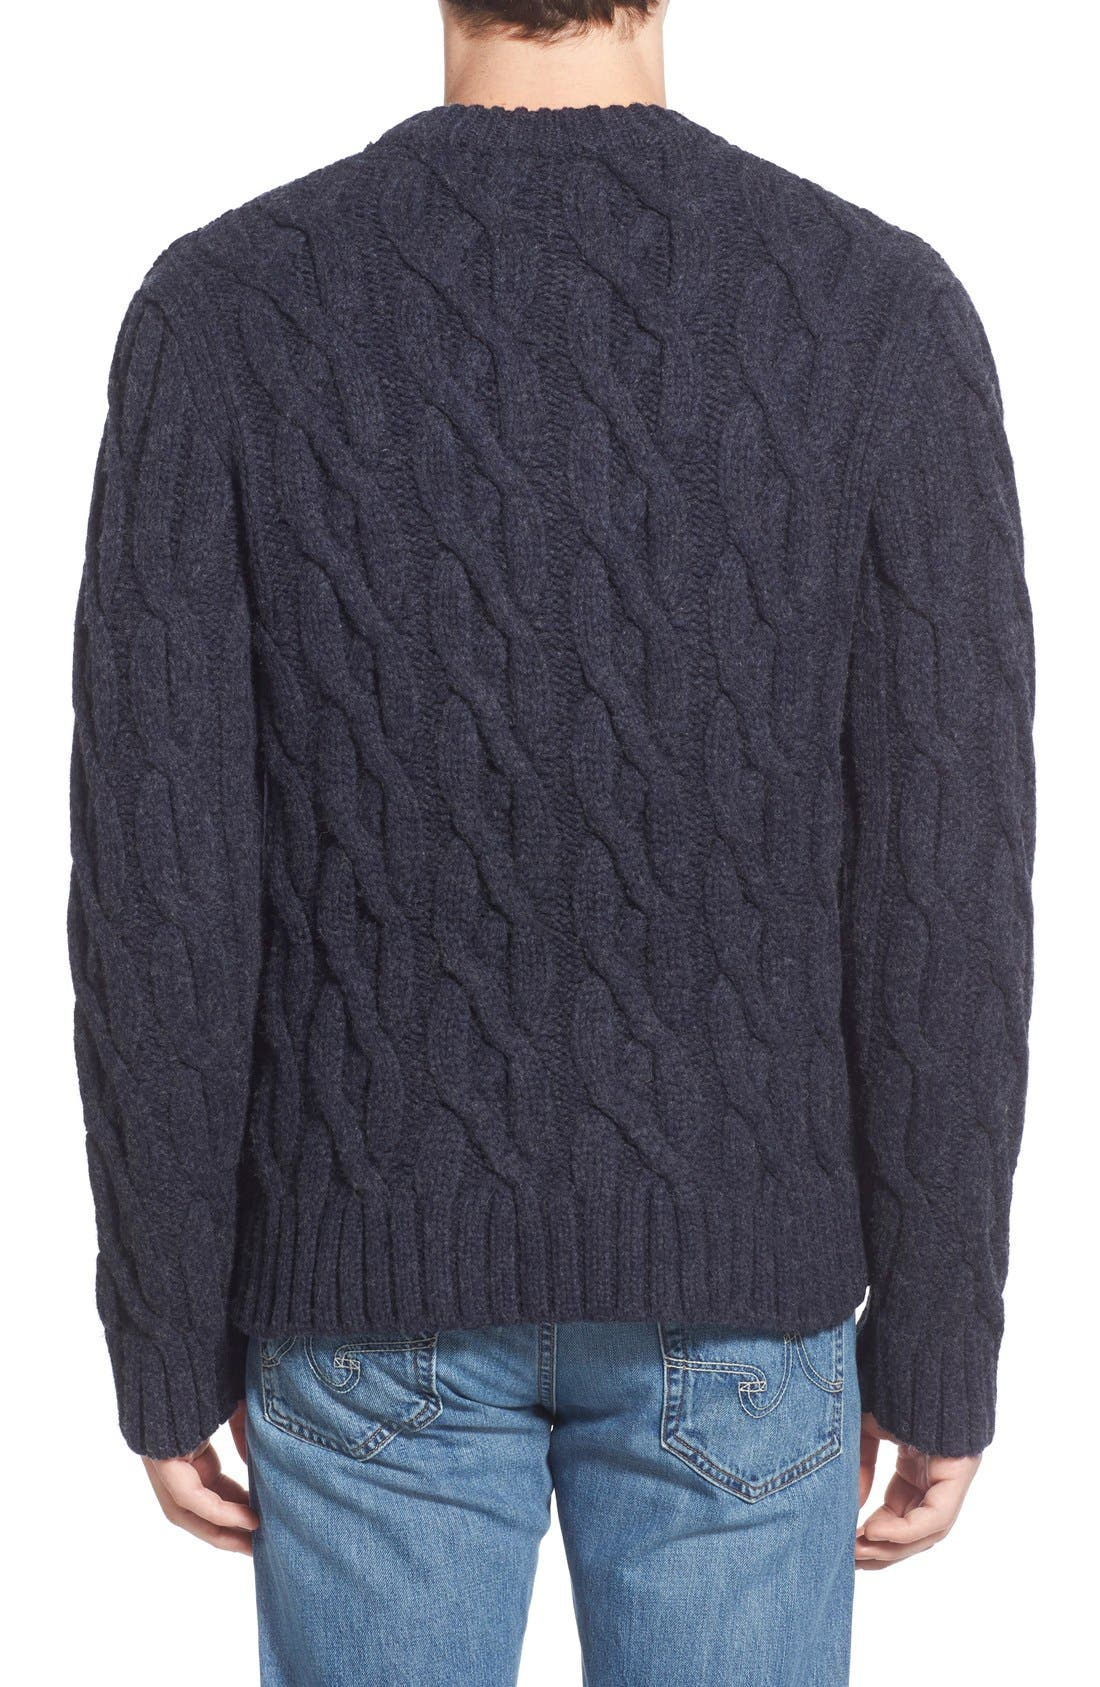 Regular Fit Cable Knit Crewneck Wool Blend Sweater,                             Alternate thumbnail 2, color,                             Navy